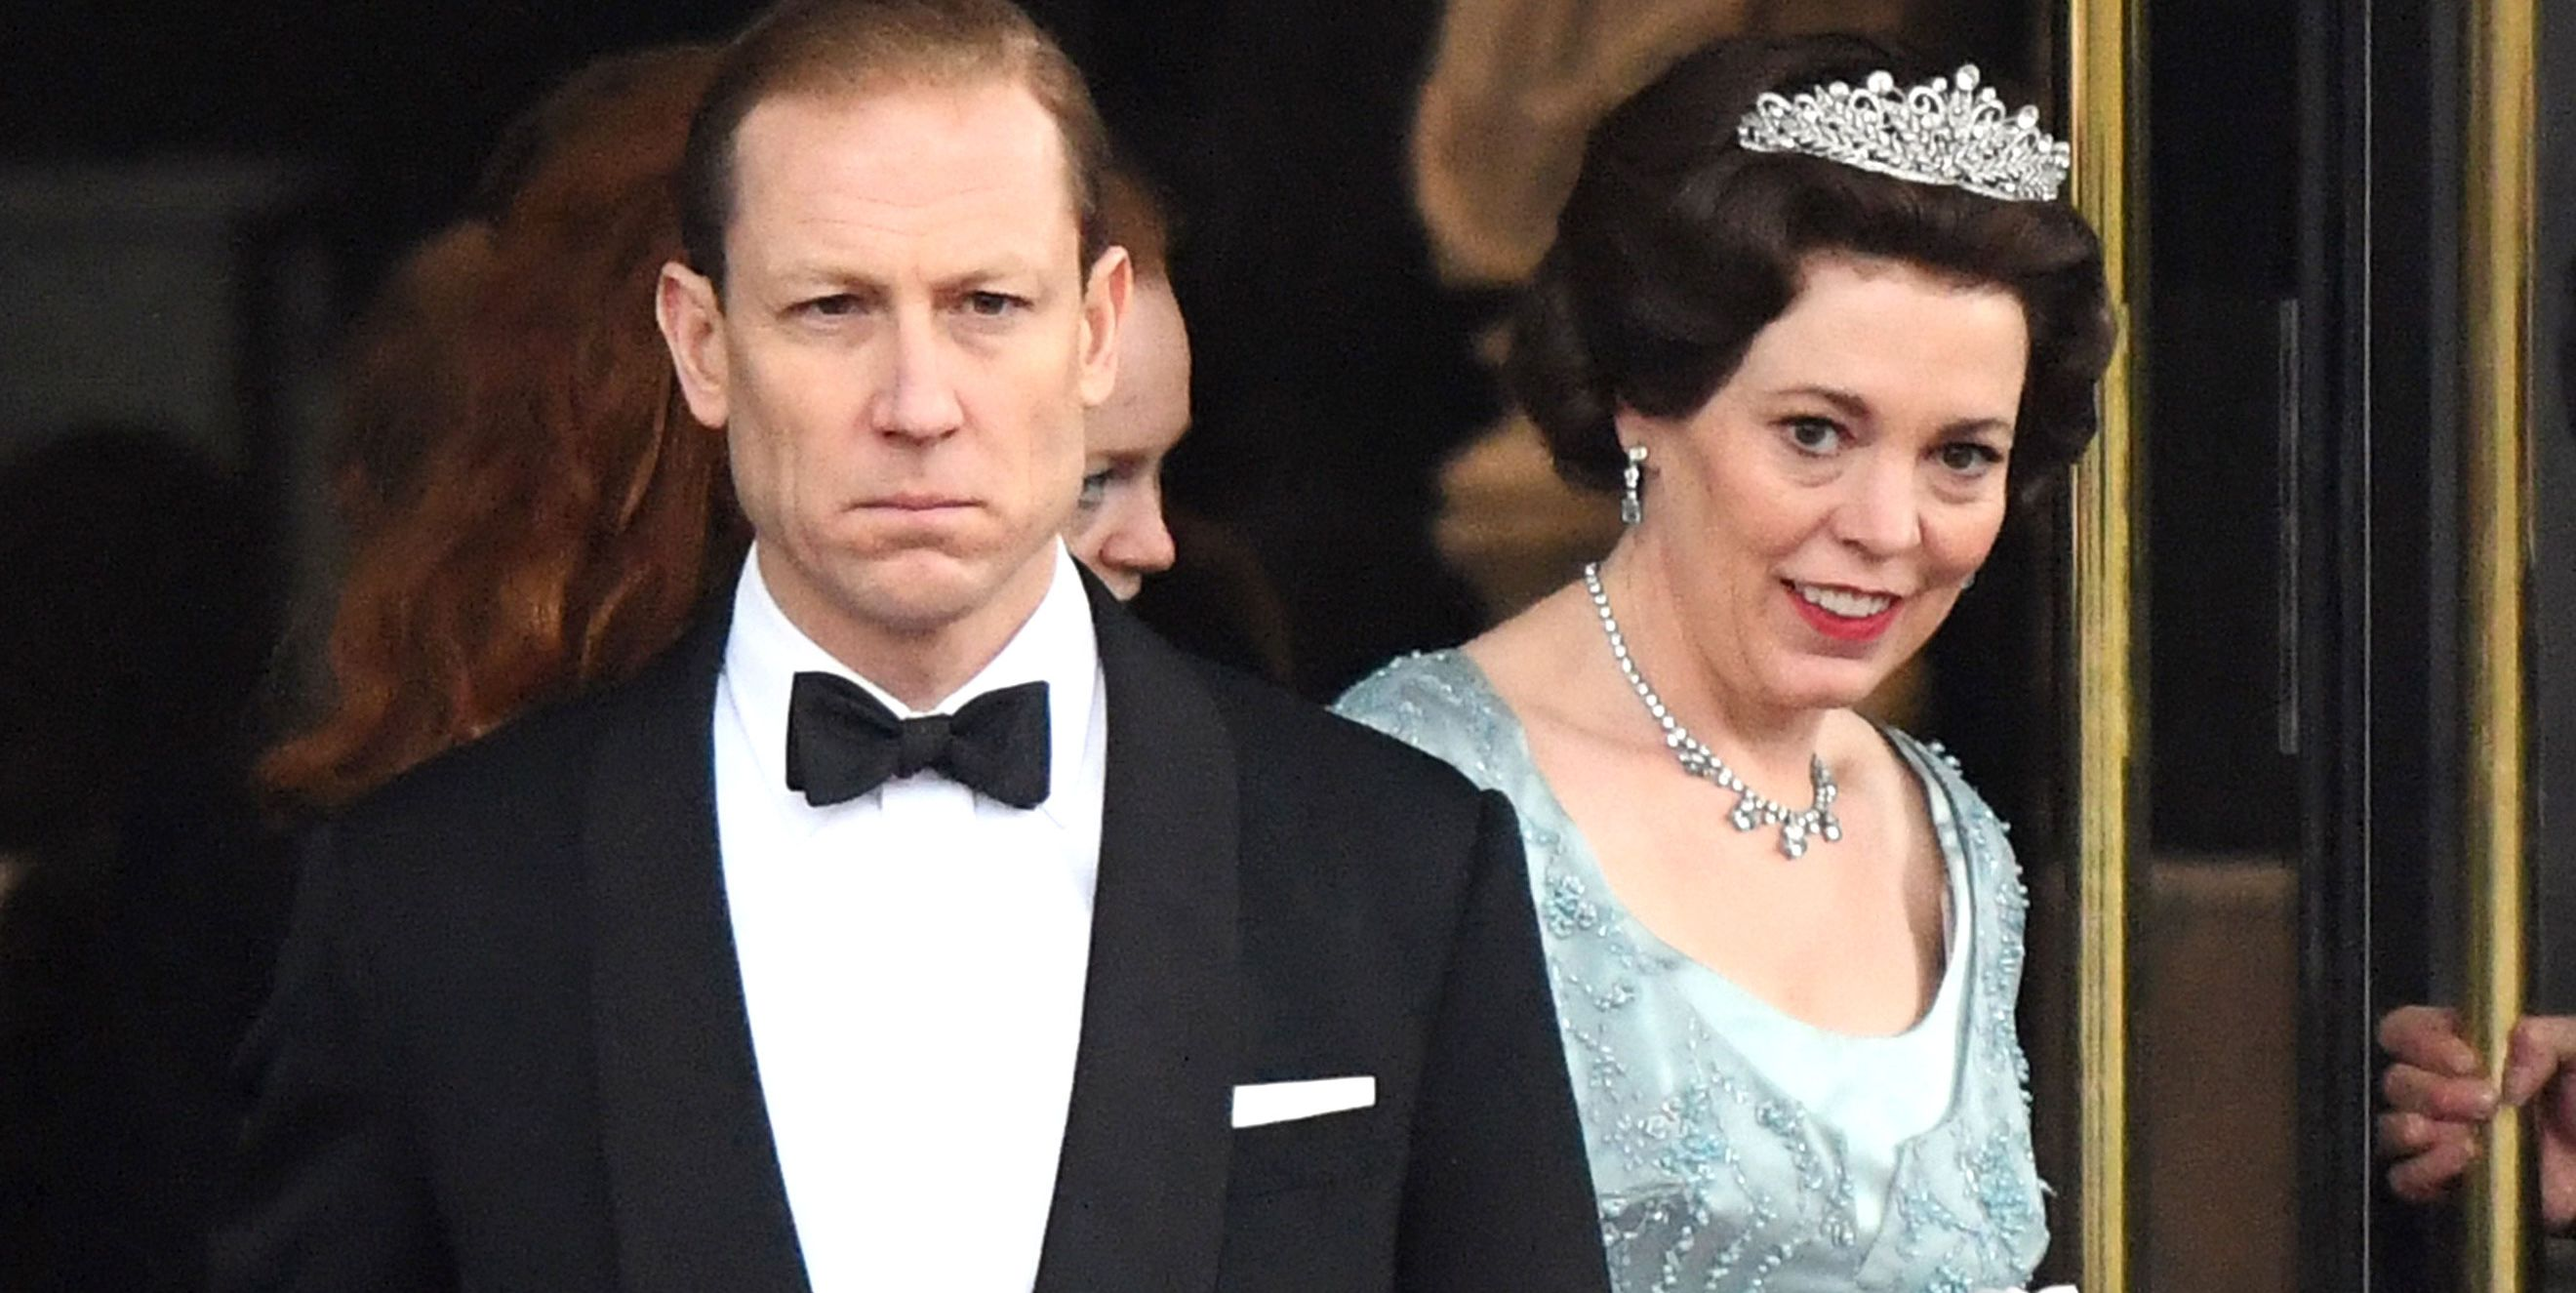 Olivia Colman as Queen Elizabeth II, filming The Crown at the Royal College of Physicians